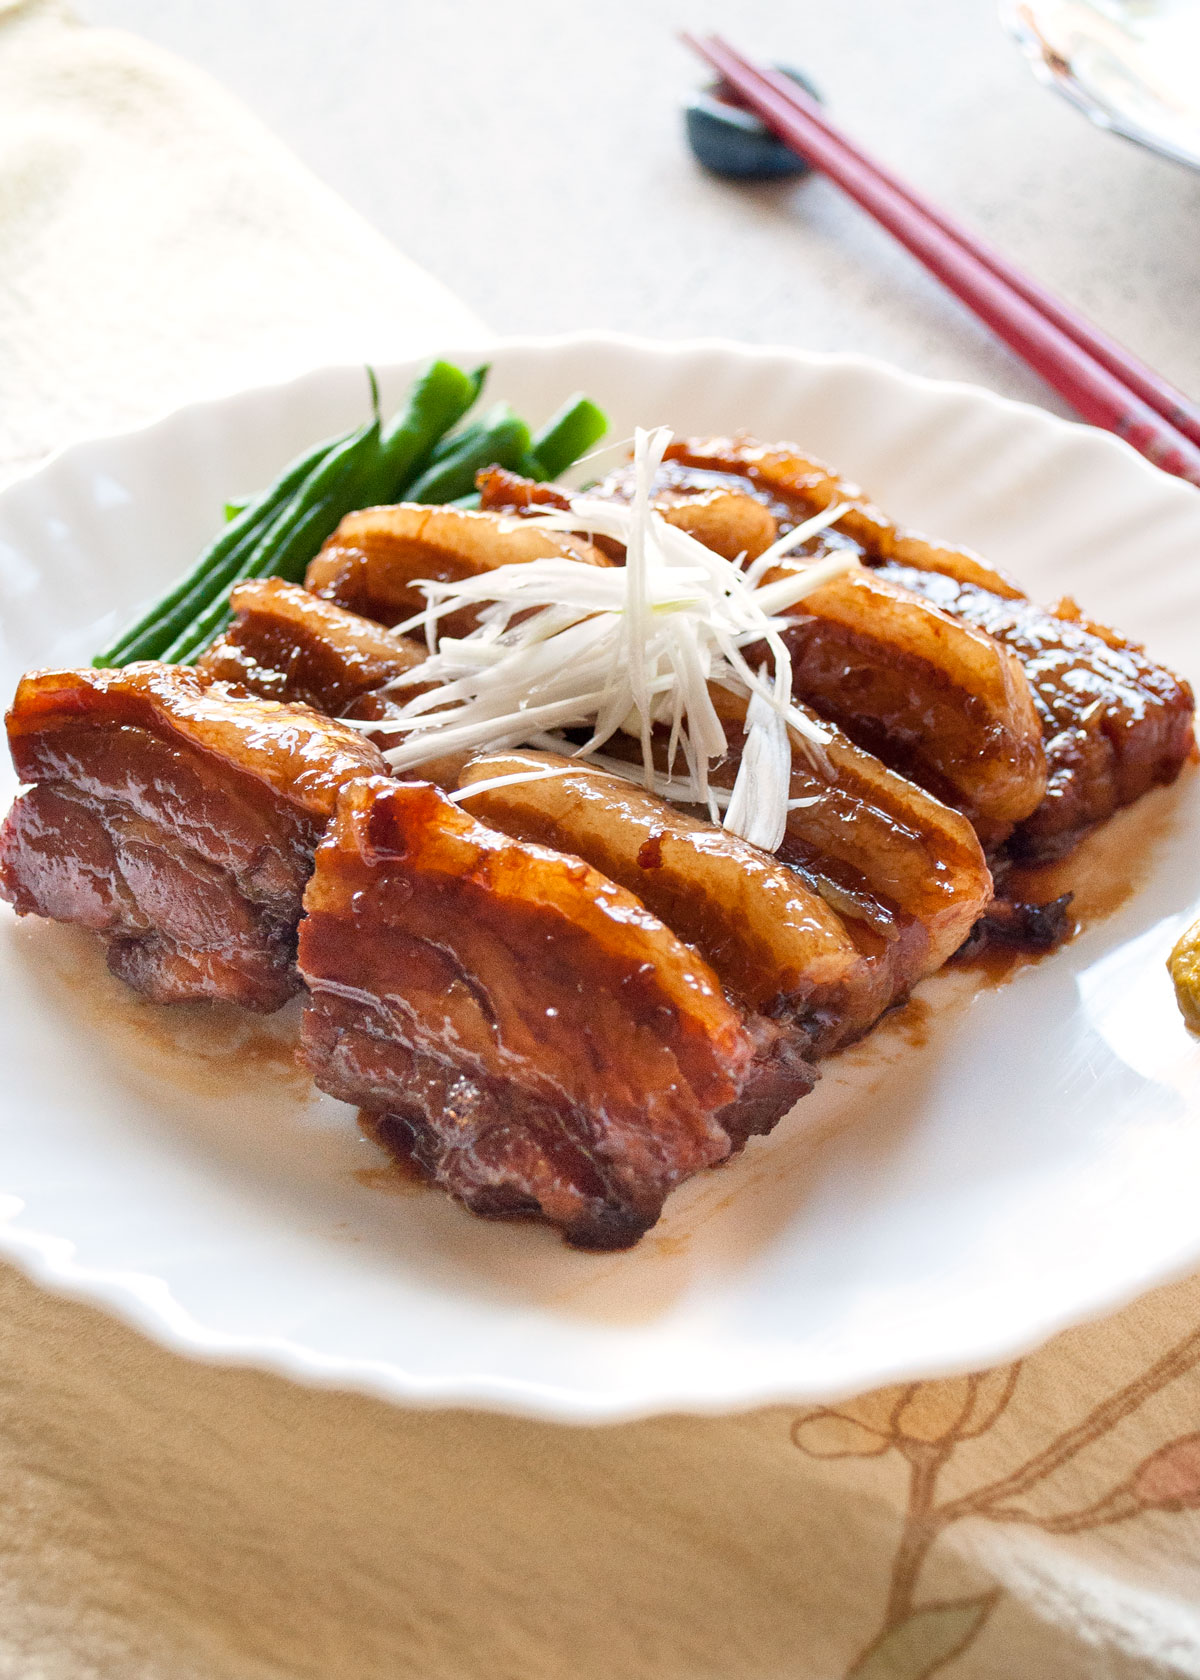 If you love pork, you must try this kakuni (角煮, simmered pork belly). The pork is so tender with lovely sweet soy sauce flavour, yet it retains the flavour of 'pork meat'. It takes time to cook the pork until it almost falls apart but it is pretty easy to make.